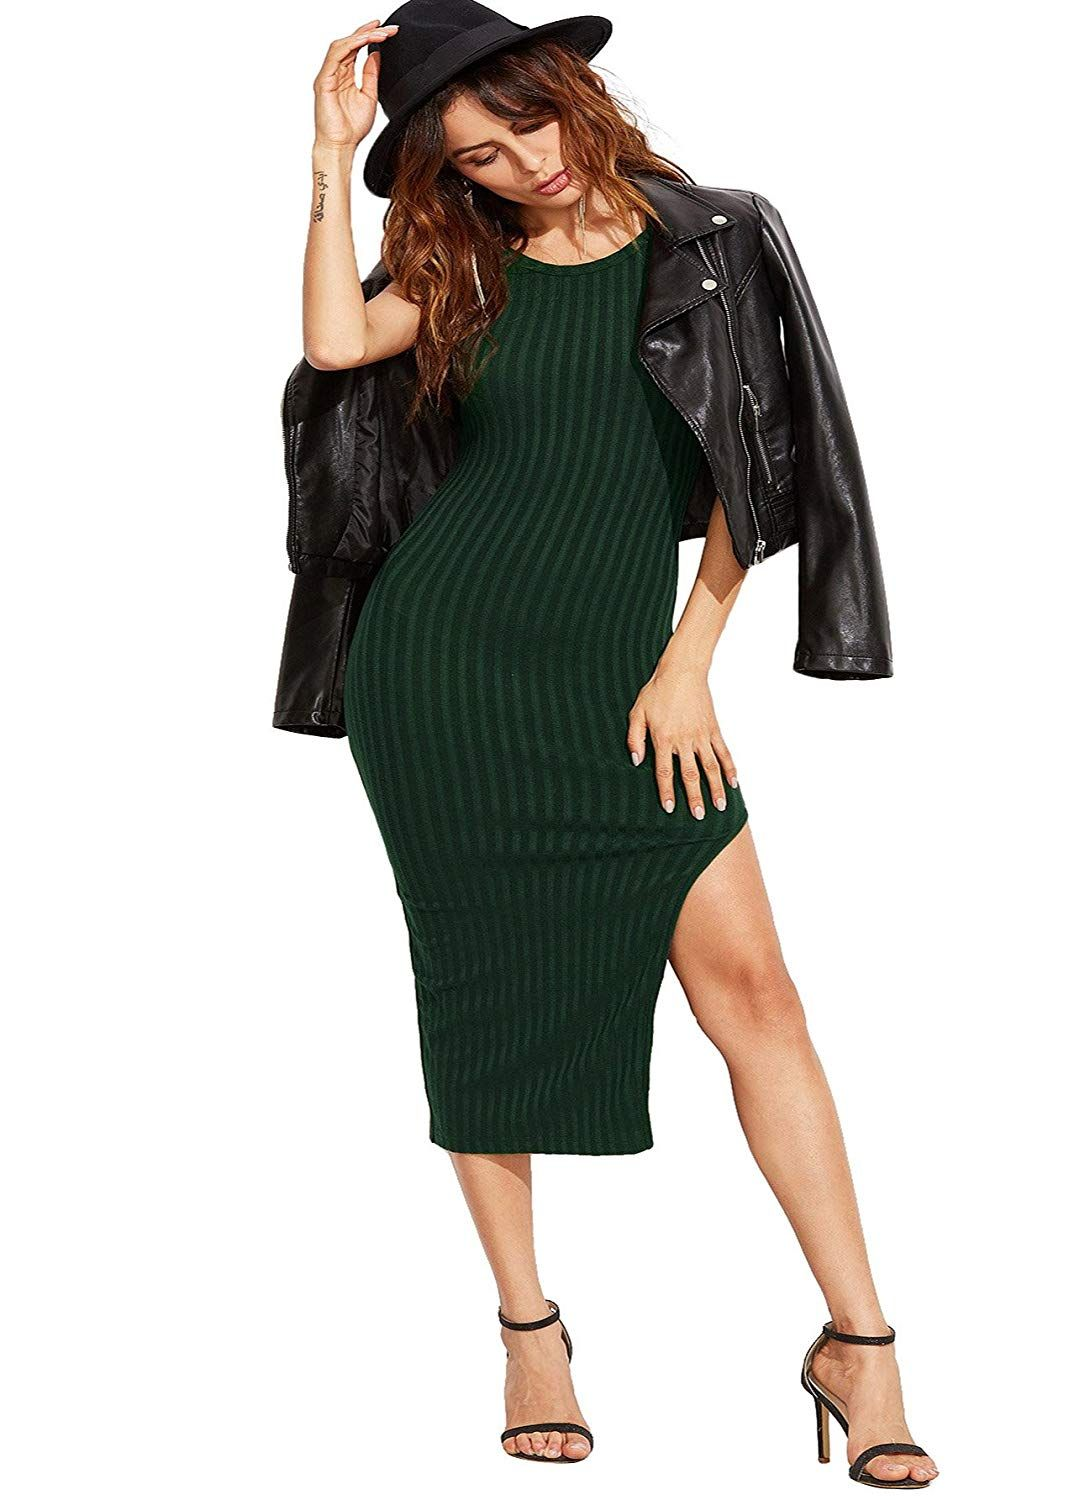 932c33c8 SheIn Women's Sexy Solid Sleeveless Side Slit Bodycon Dress at Amazon  Women's Clothing store: